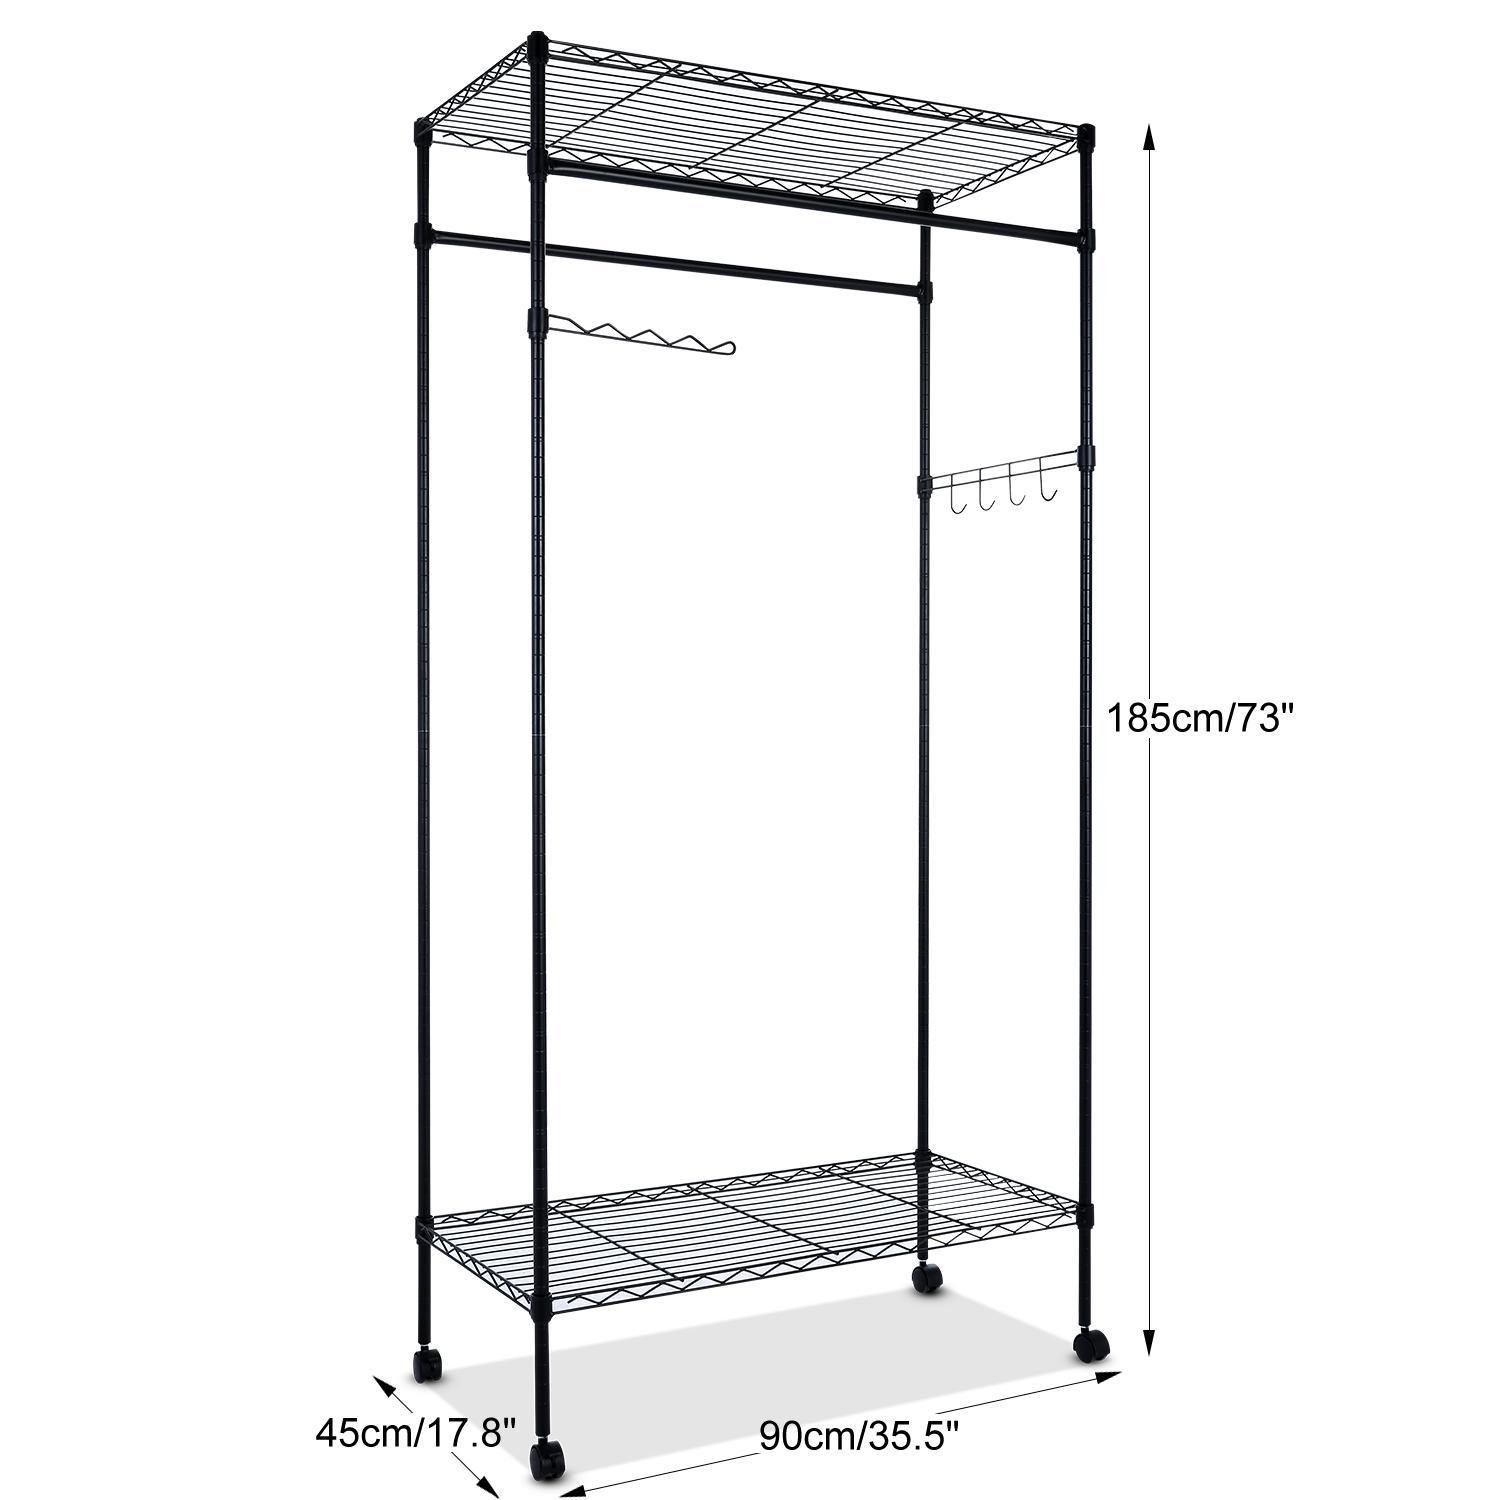 Amazoncom Heavy Duty Rolling Garment Rack With Wheels And Shelves,